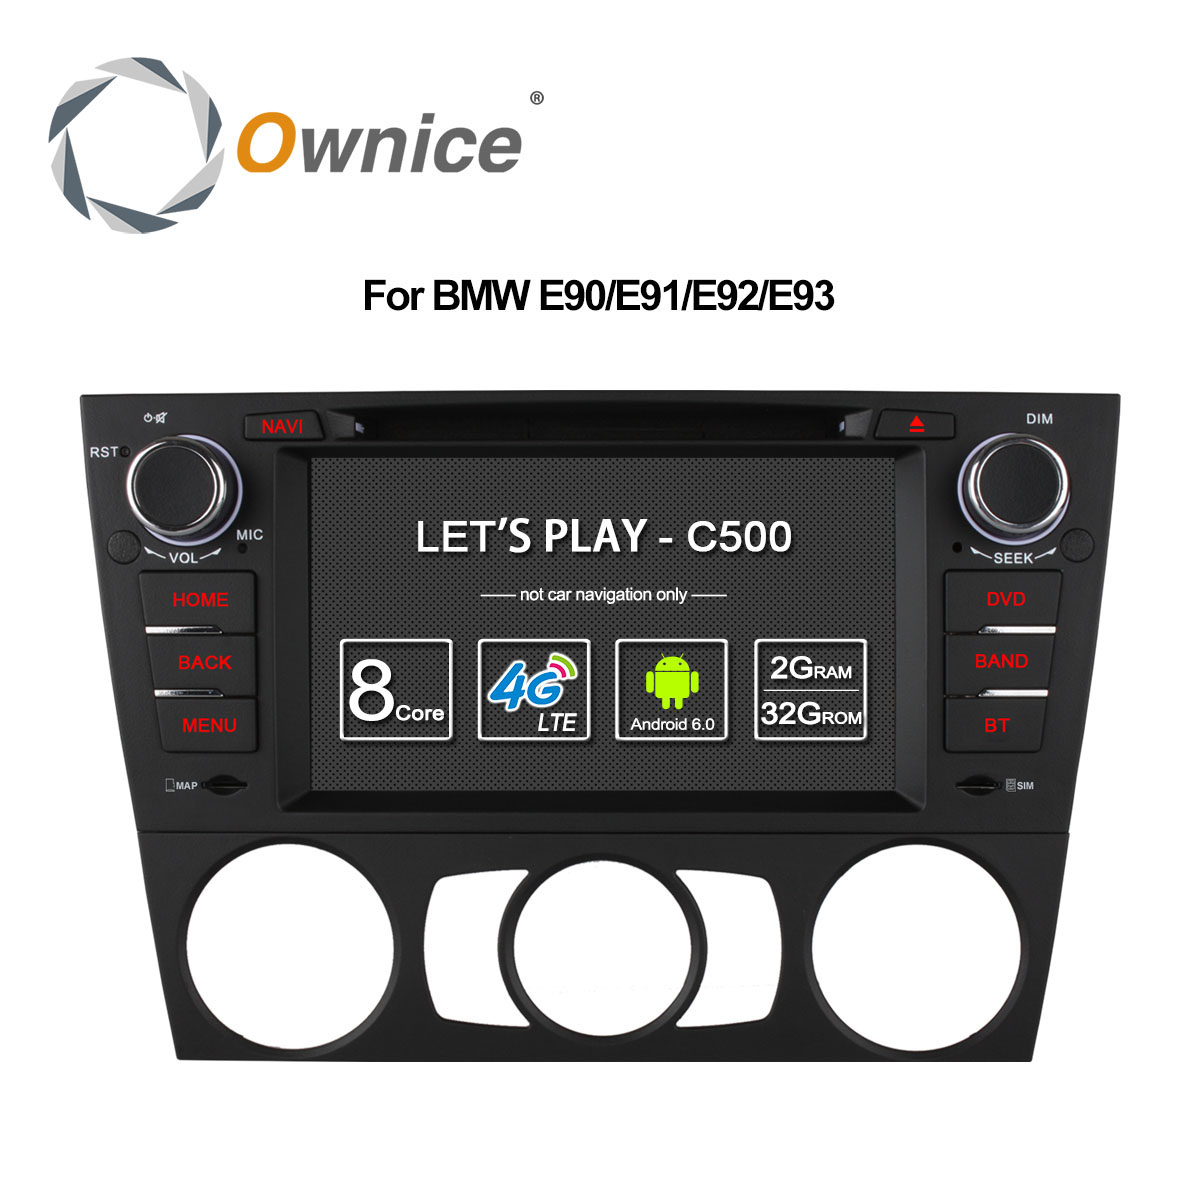 Ownice C500 4G SIM LTE Android 6.0 Octa 8 Core Car DVD For BMW 3 Series E90 E91 E92 E93 GPS Support Wifi Radio 2GB RAM 32GB ROM image